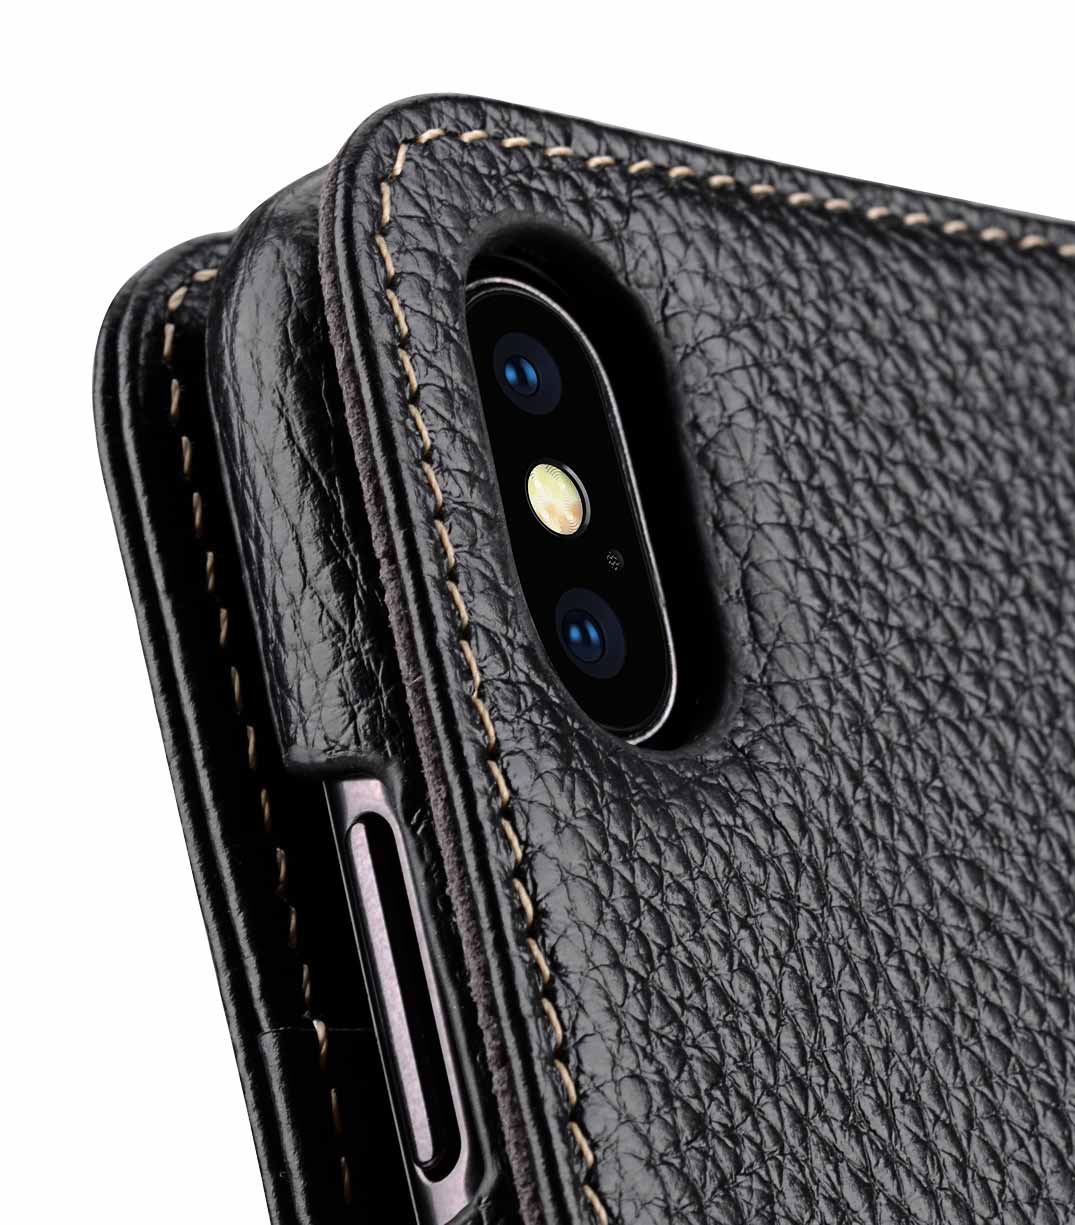 Apple iPhone XS Max Brown Leather Case Review! - YouTube